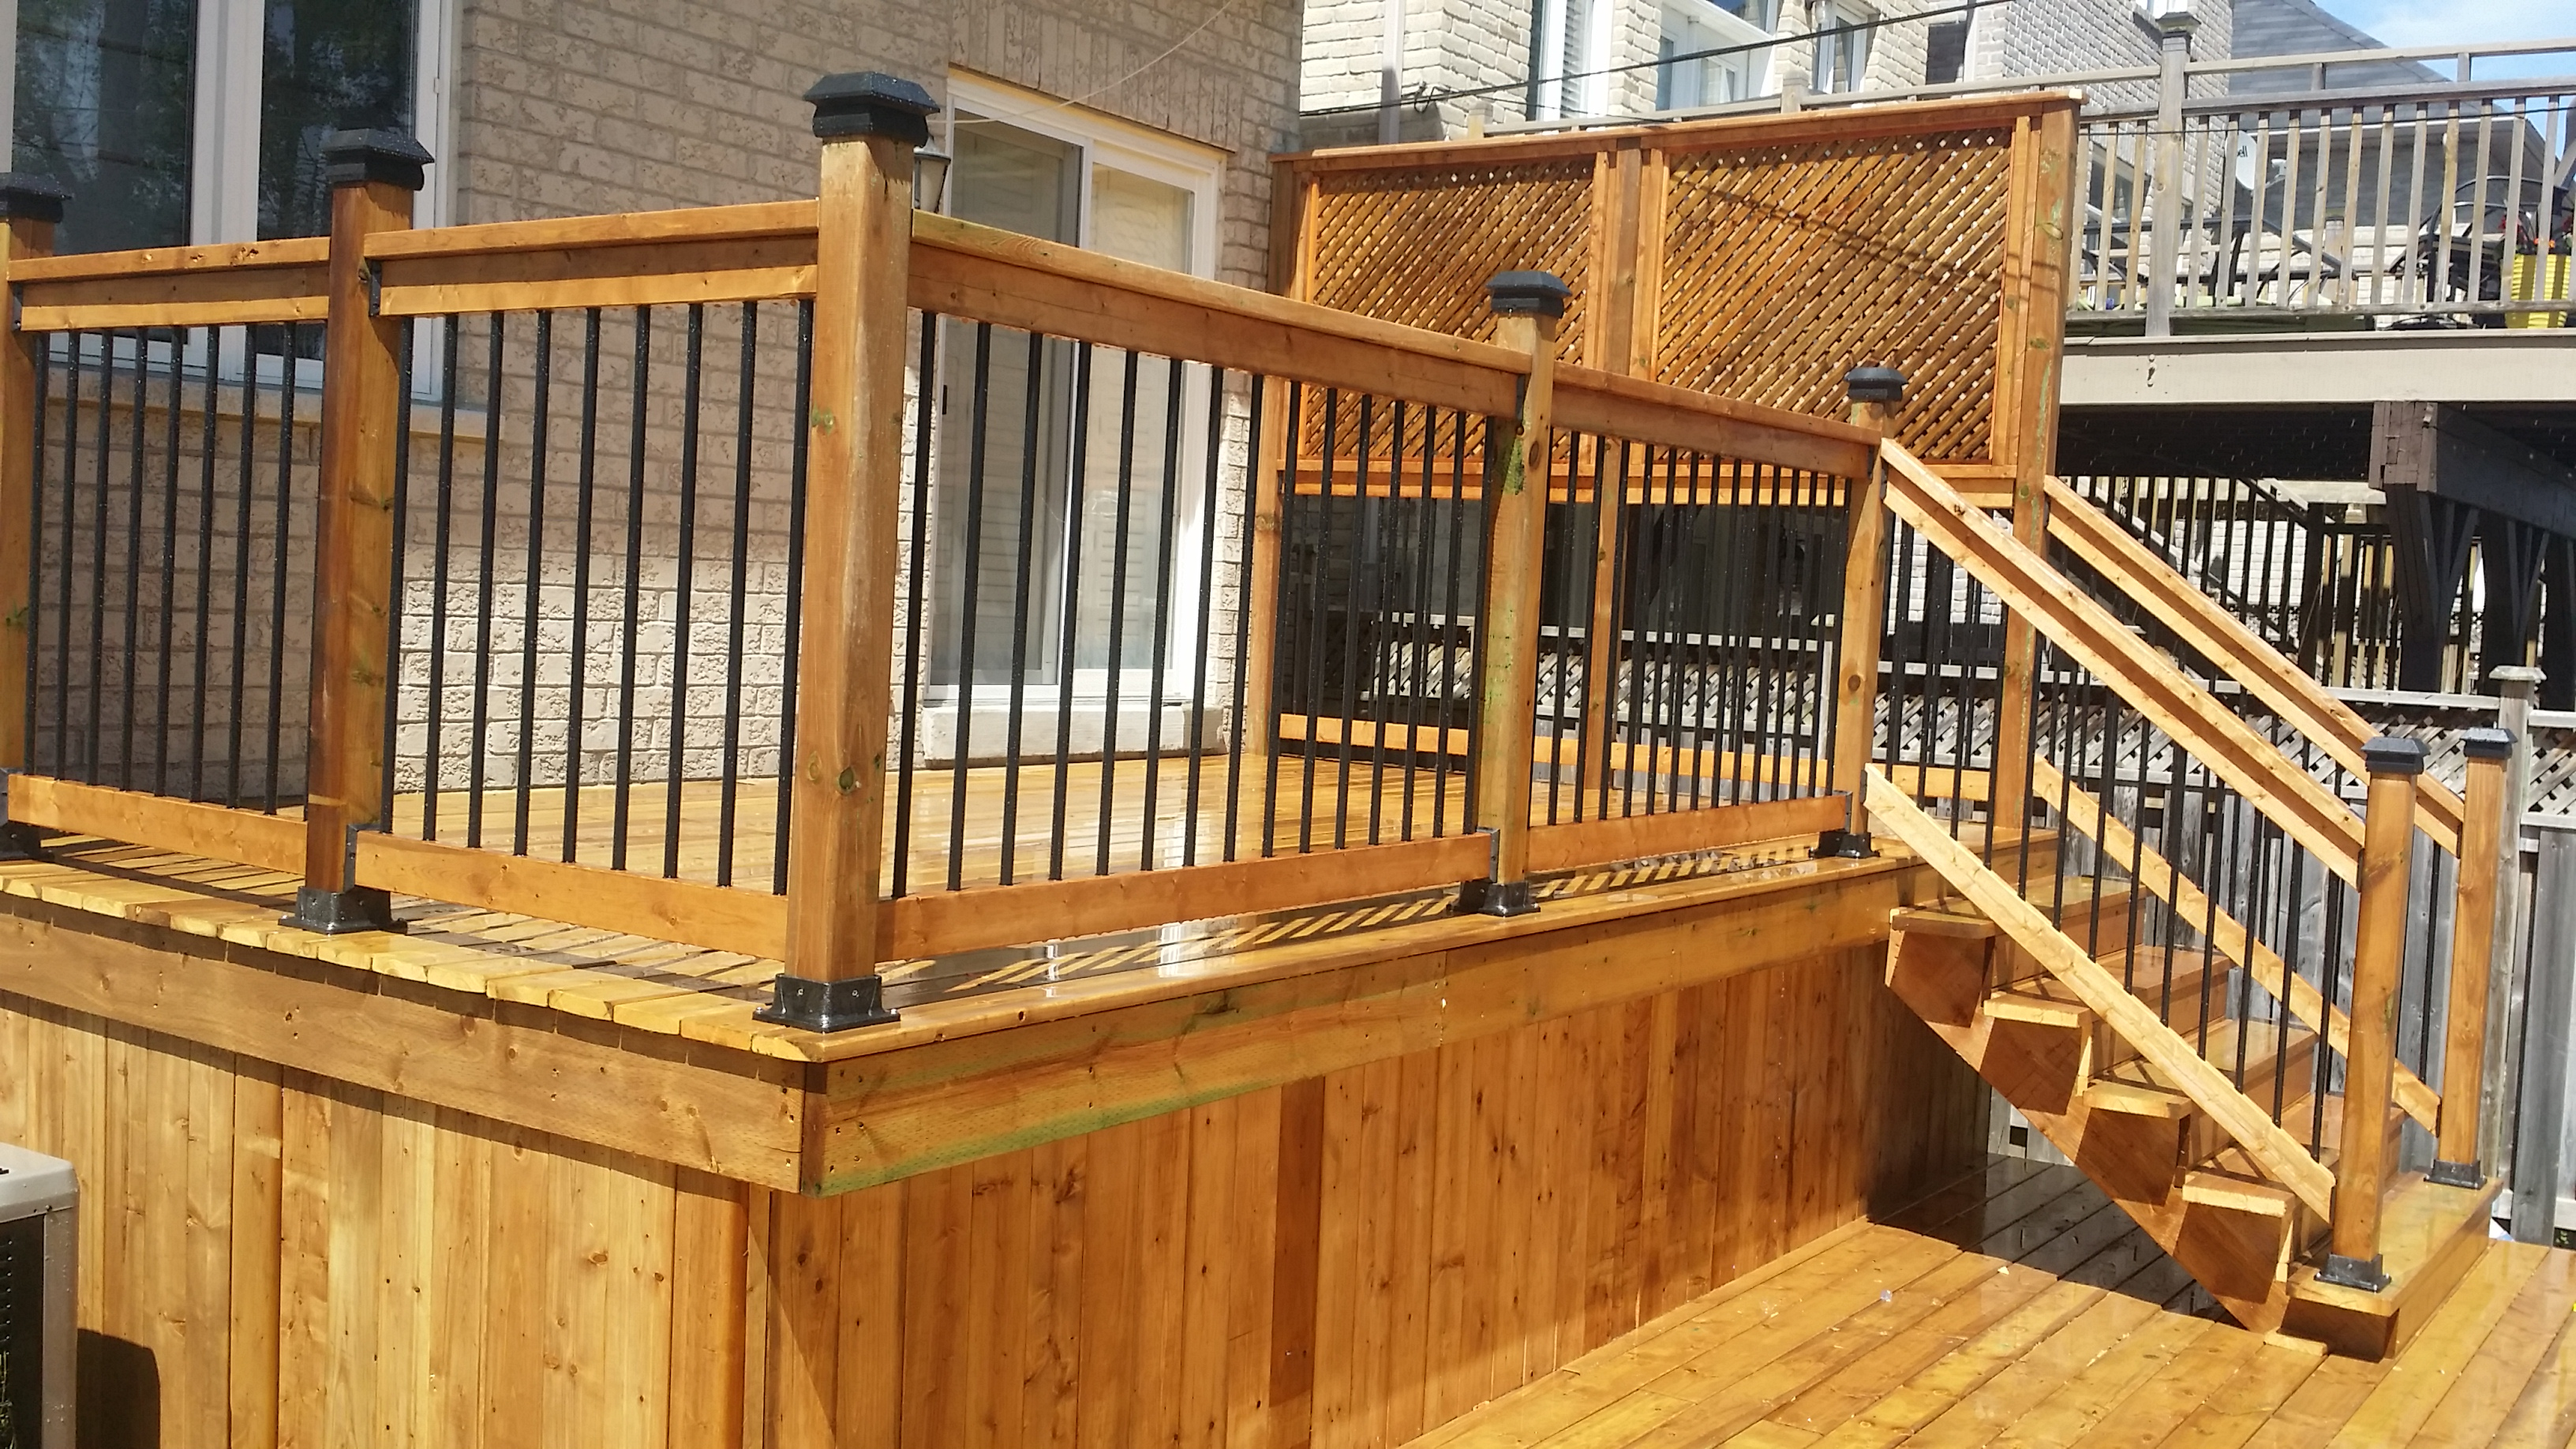 Patios Toronto Call us now at 416 429 4682 for a free estimate